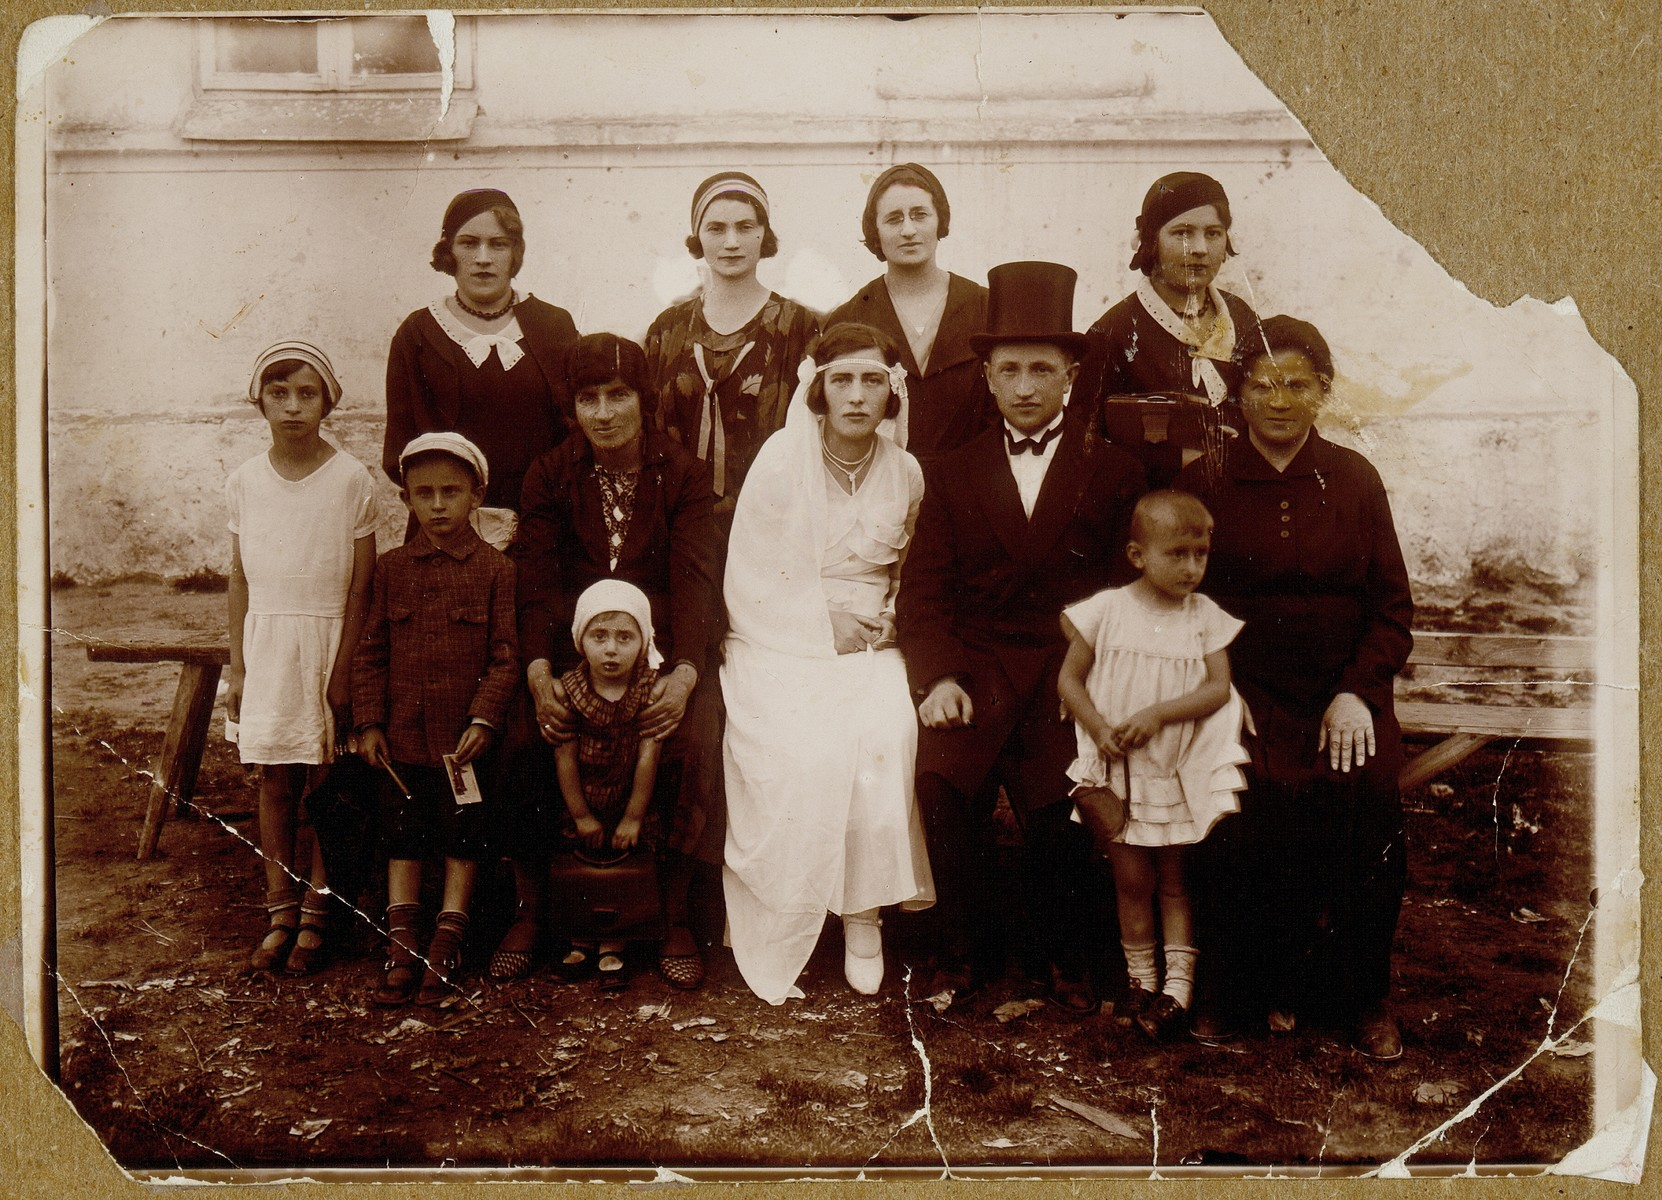 The wedding of Bat-Sheva Rozowski and Rabbi David Zalmanovitz from Ilya.    Bat-Sheva was the daughter of Rabbi Szymen Rozowski.  This was the last wedding celebration in which the entire shtetl participated, as in pre-World War I days.  Sitting next to Bat-Sheva in the shulhoyf is her mother, Rebbetzin Miriam; next to the groom is his mother, Dvorah.  Standing behind them are Bat-Sheva's brother's wife and David's sisters.  In the front row are their little nephews and nieces.  They were all murdered during the Holocaust, the Rozowski family in the September 1941 massacre, Bat-Sheva, David, and their three children in Treblinka.